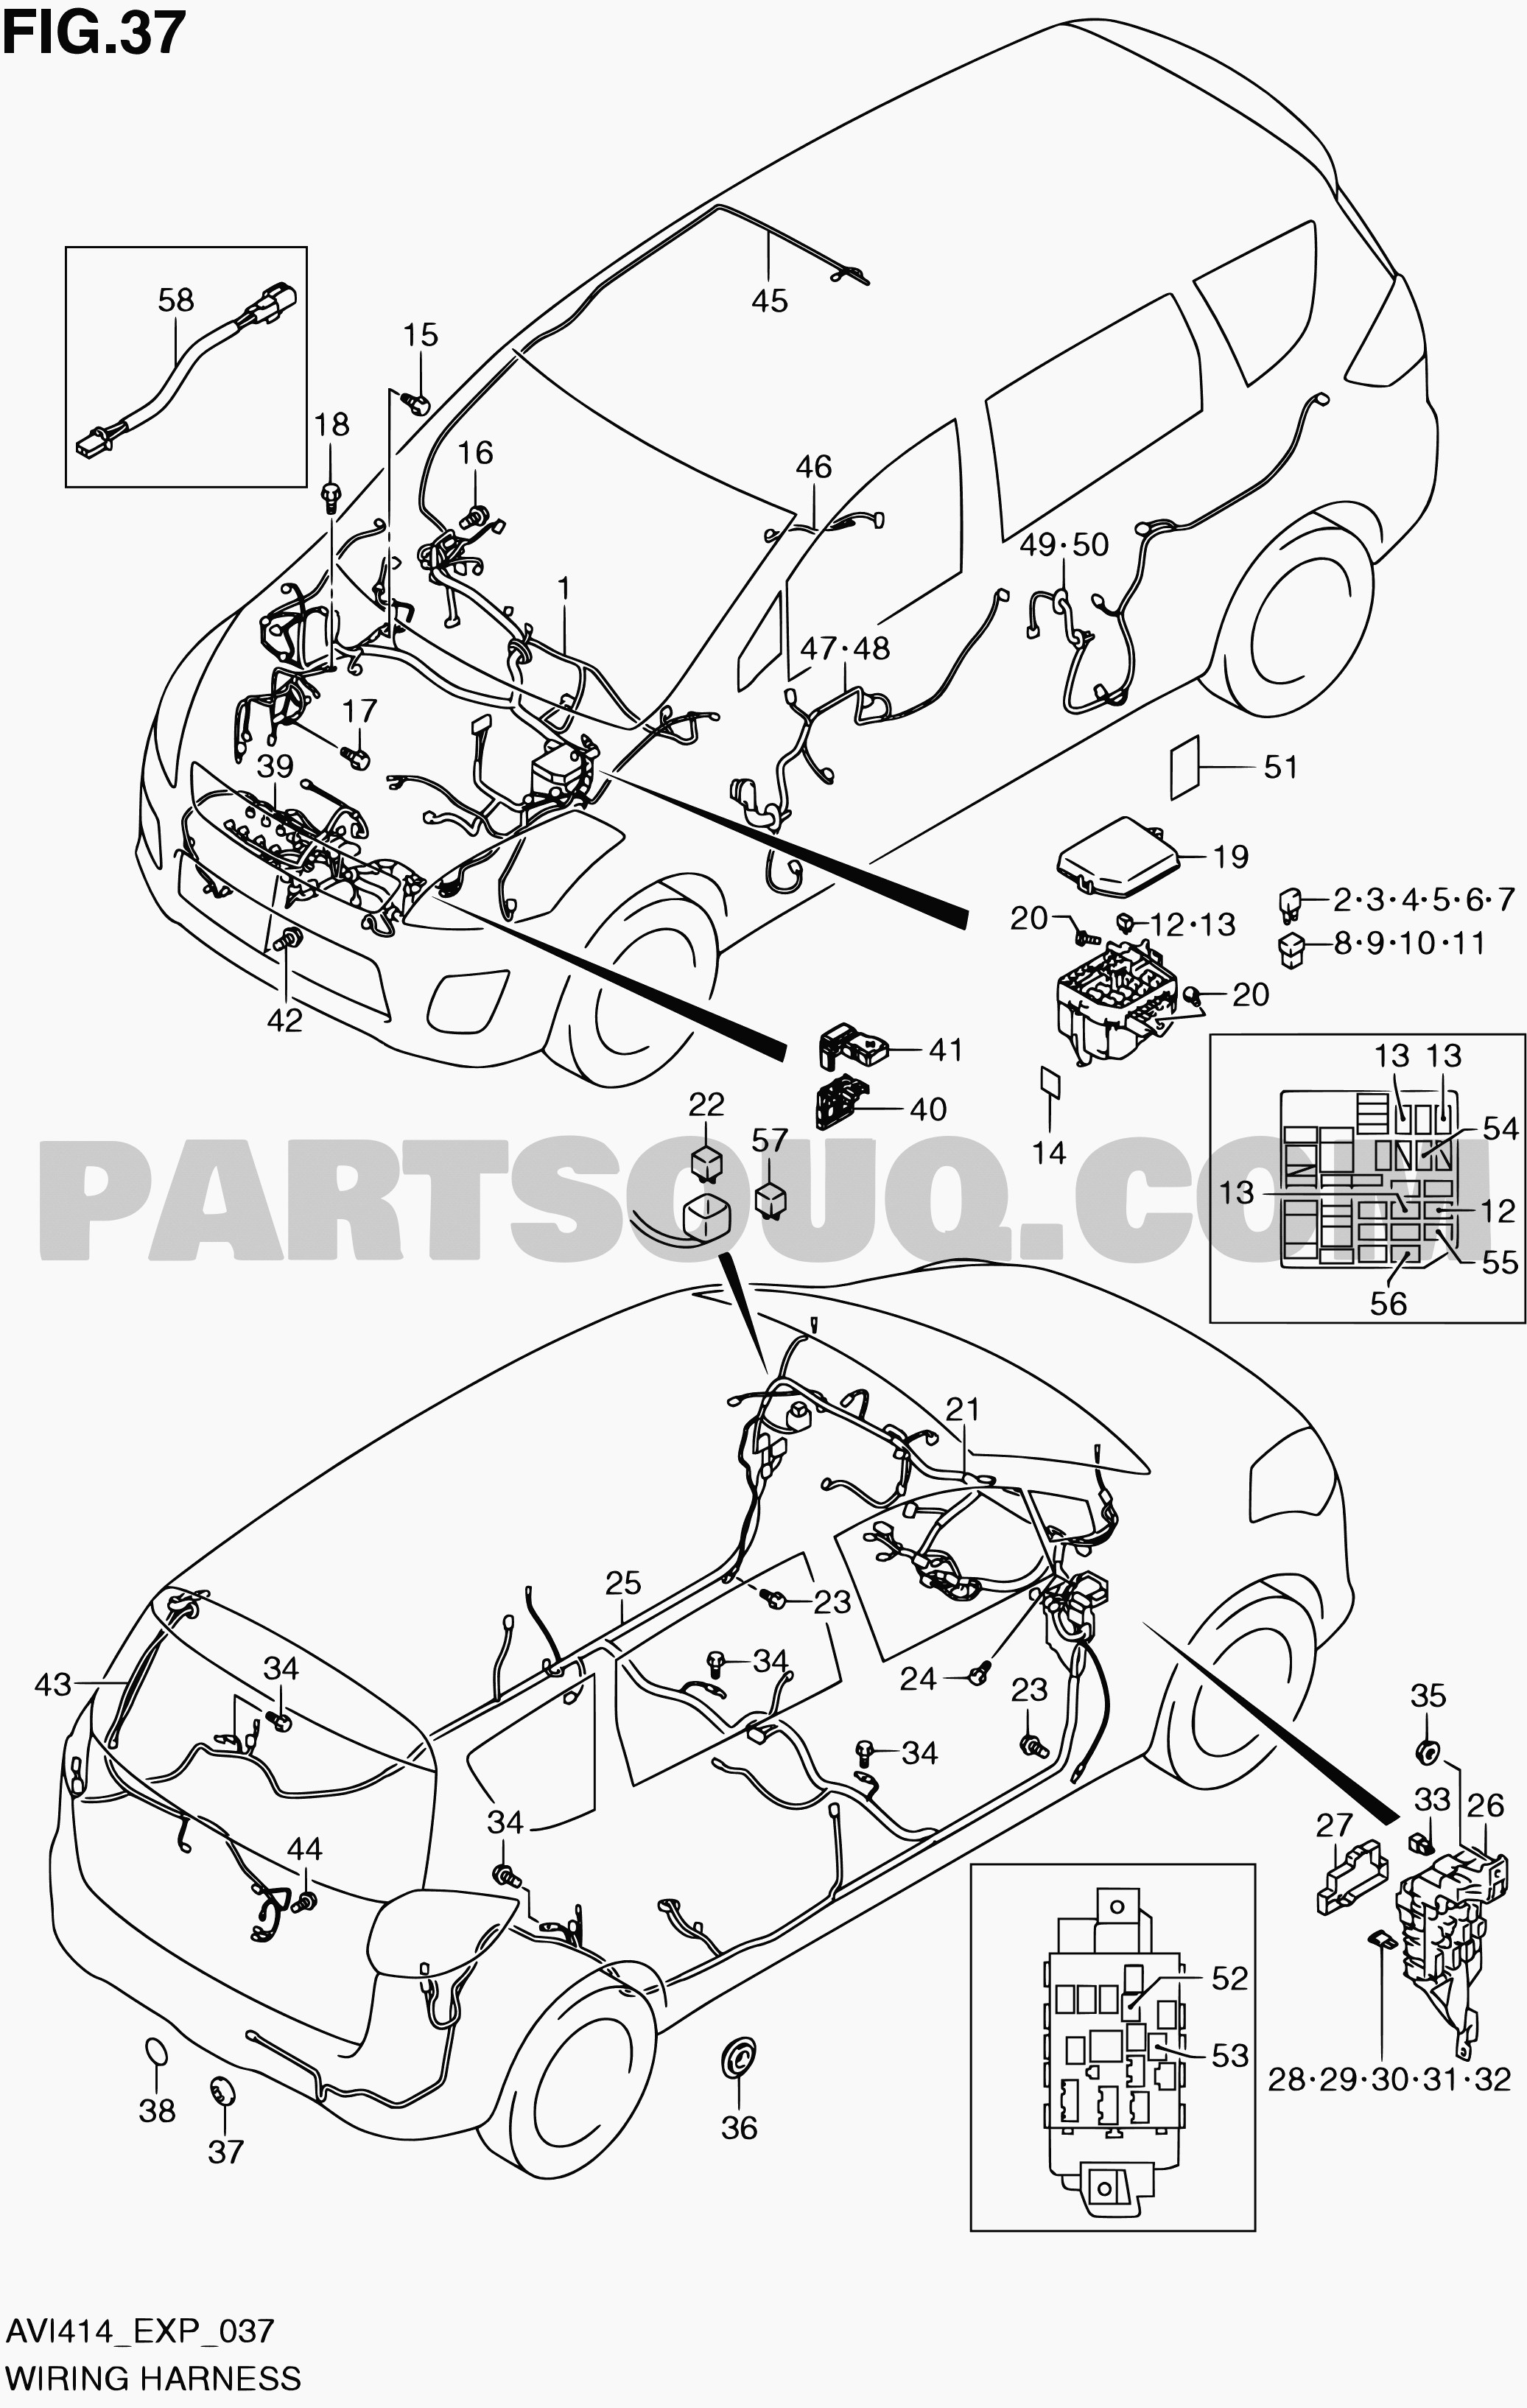 Diagram Of Car Parts In Spanish 37 Wiring Harness Ertiga Avi414 Avi414 P06 P85